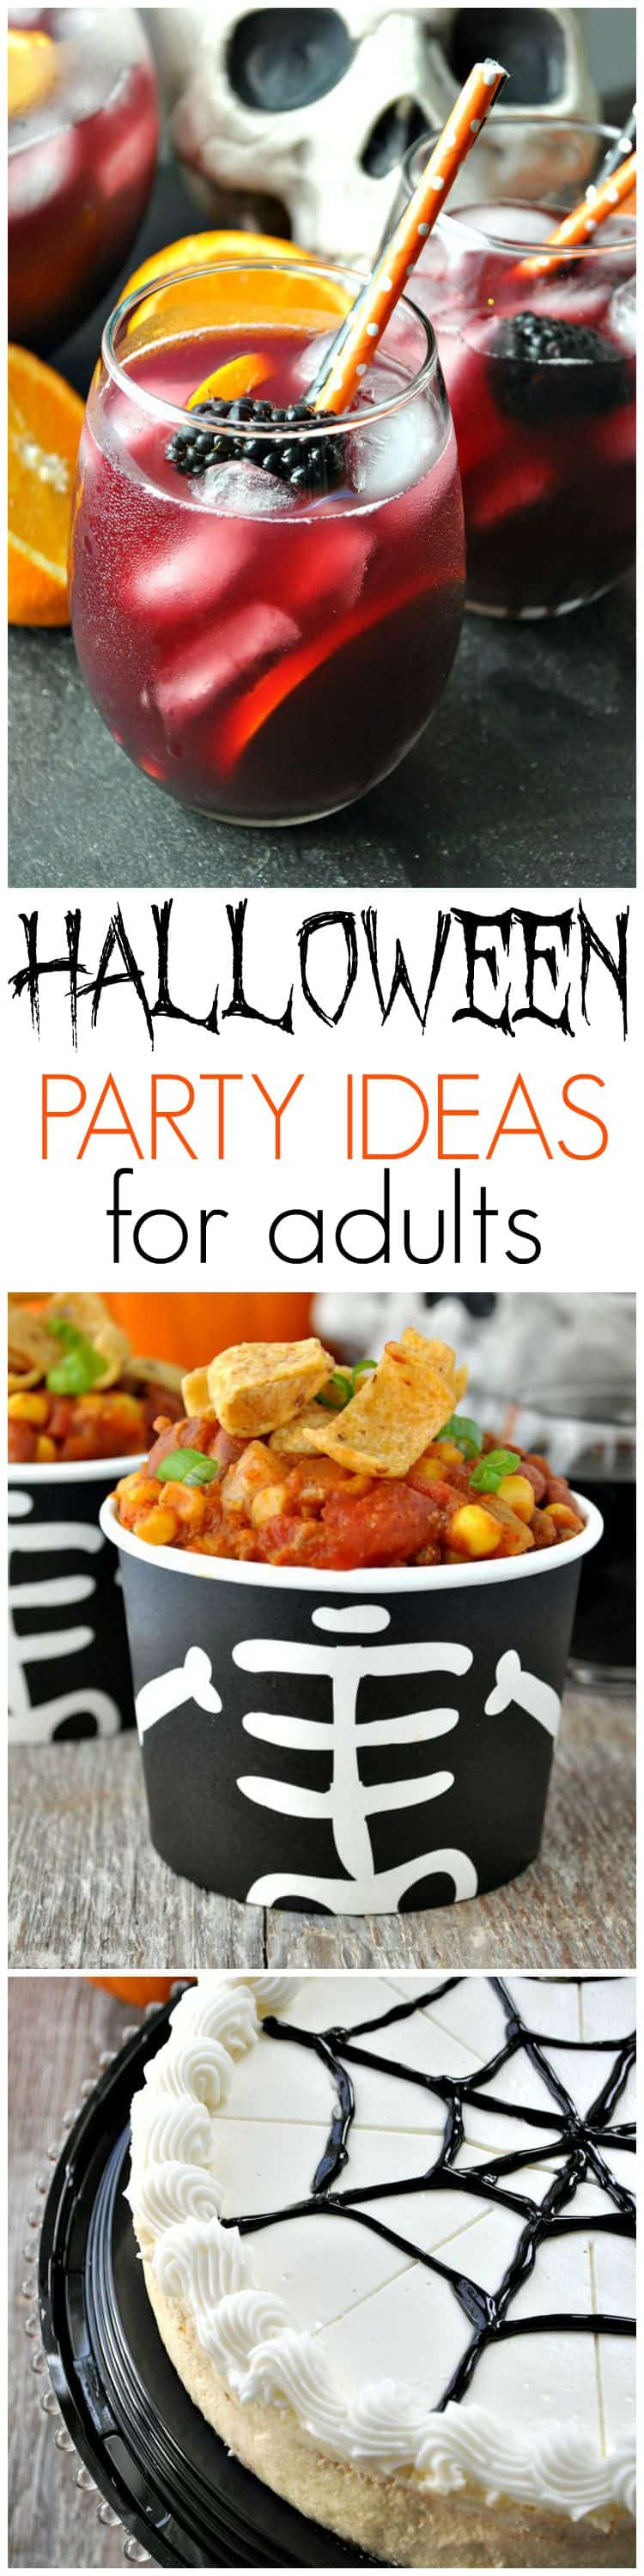 Slow Cooker Pumpkin Chili Halloween Party Ideas For